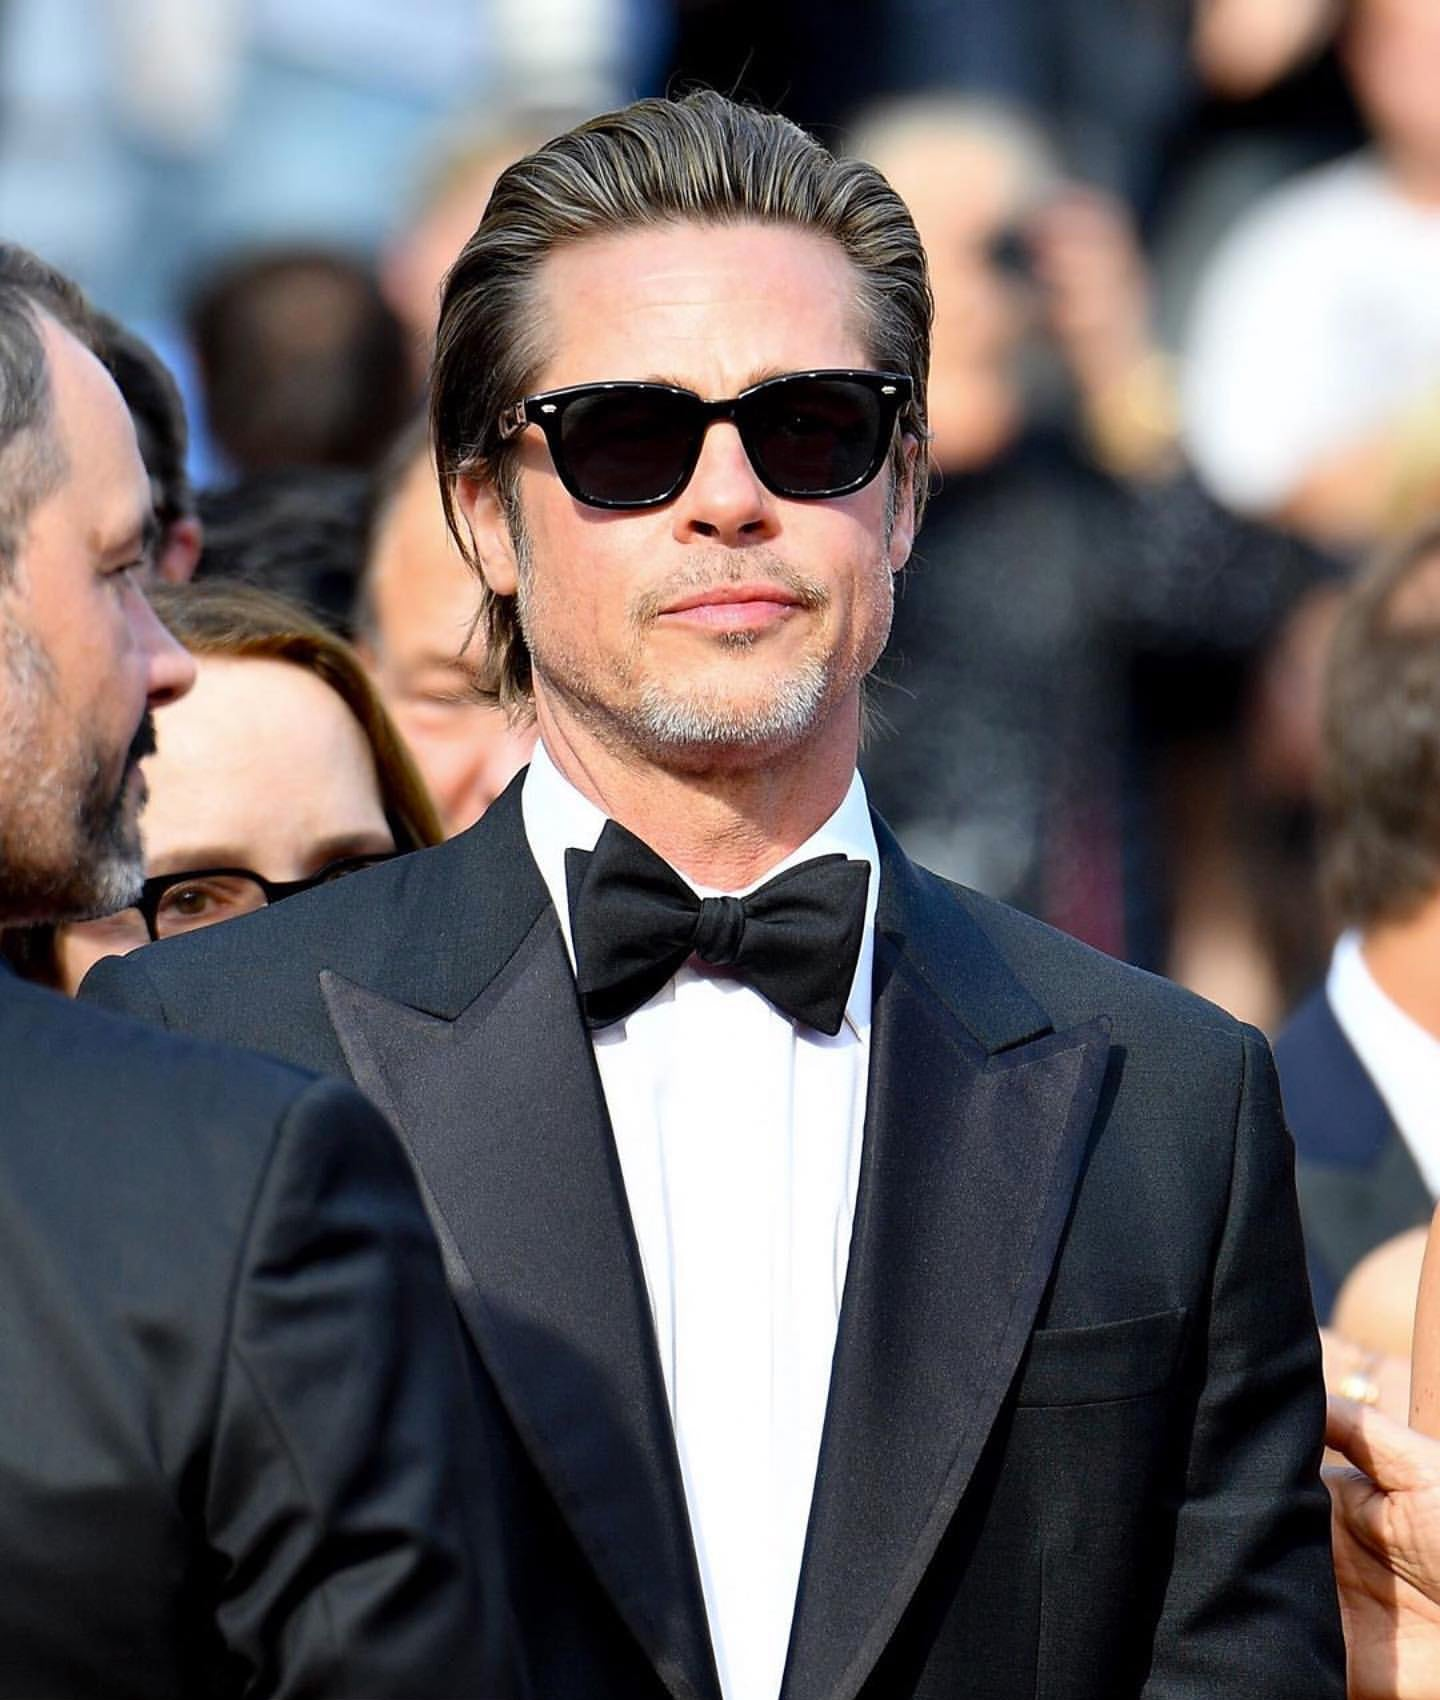 BRAD PITT: ONCE UPON A TIME IN CANNES...